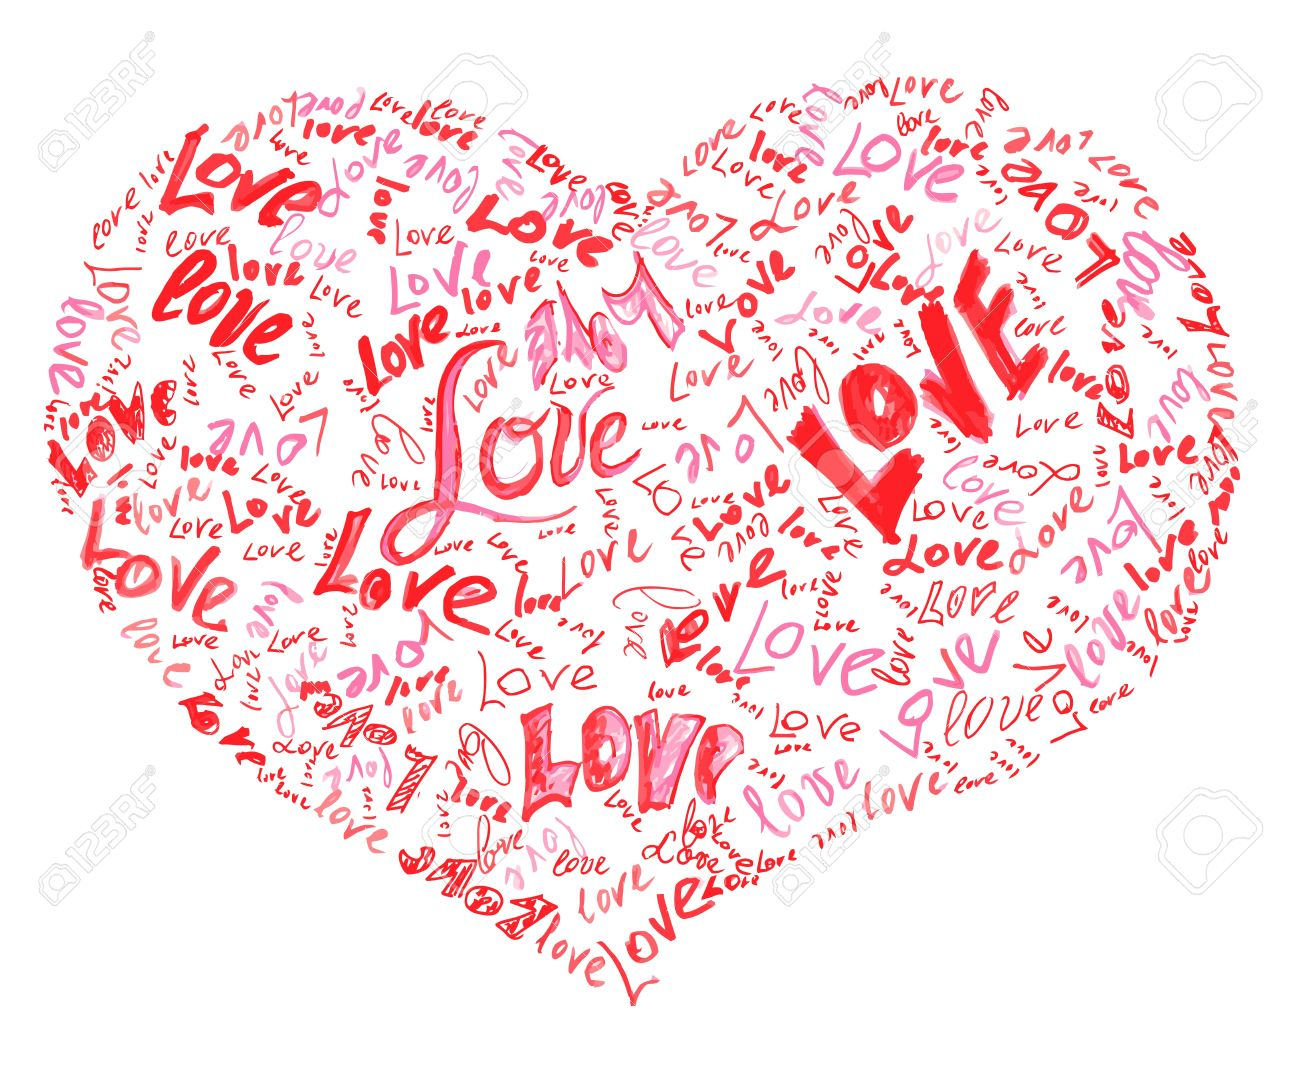 Filled with love clipart banner black and white Heart Drawn By Pencil Filled With Love Words Inside Stock Photo ... banner black and white